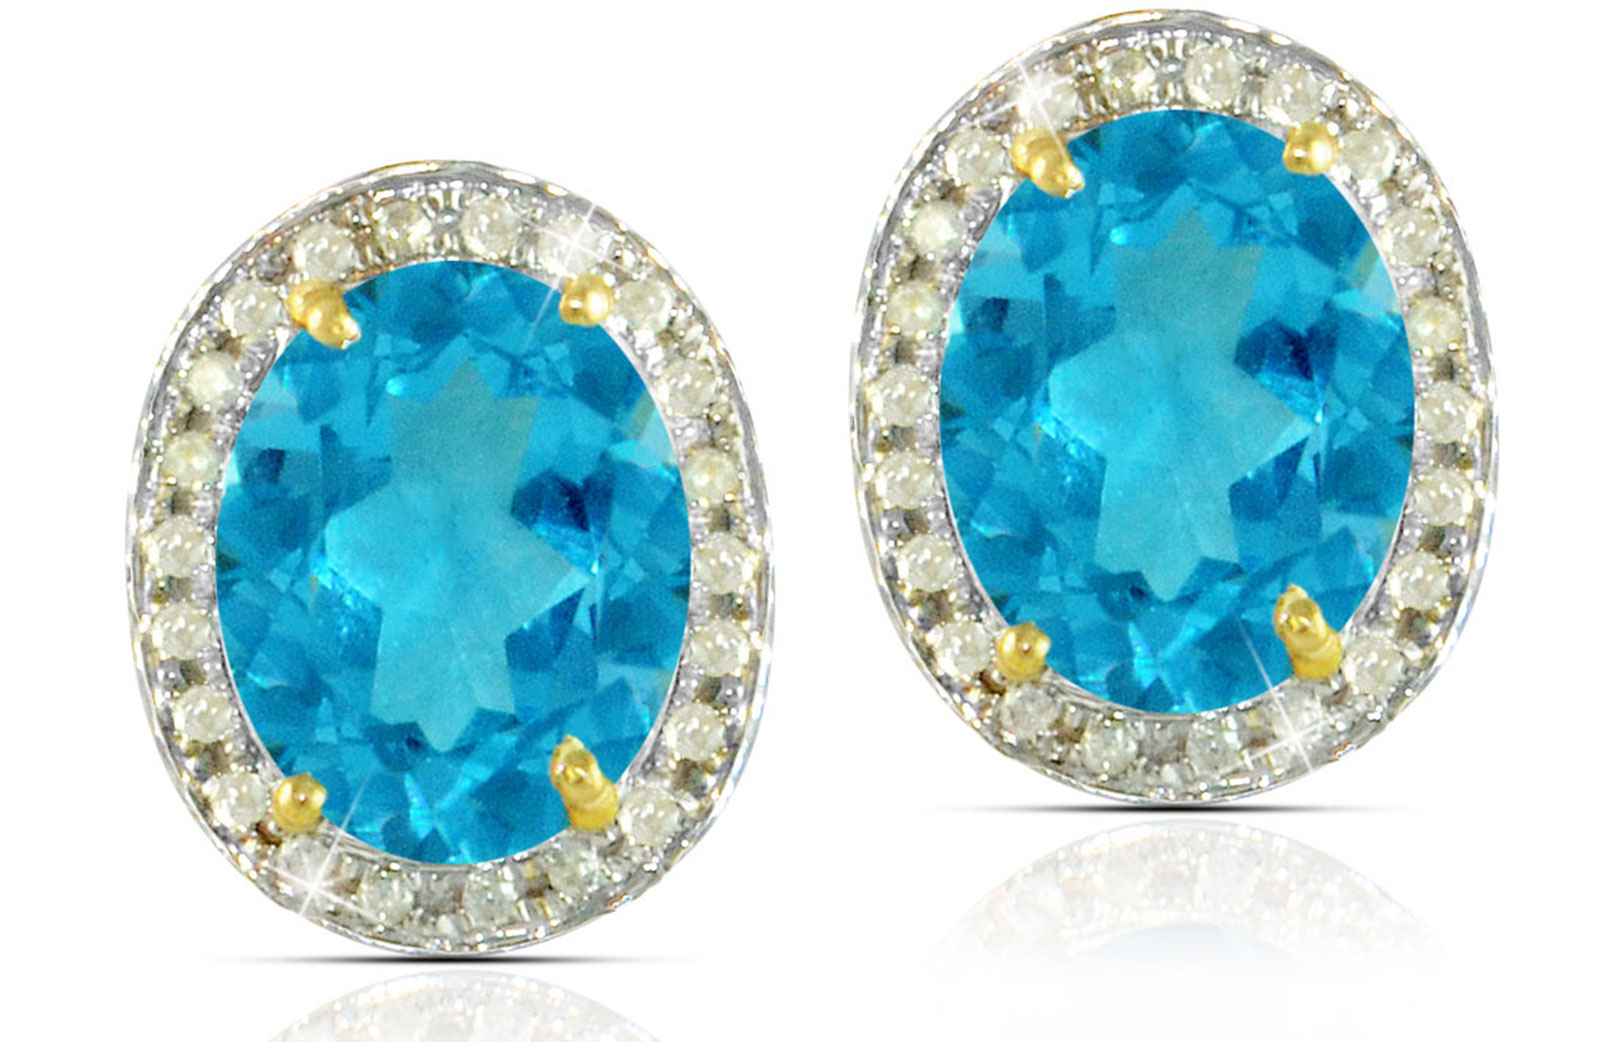 Vera Perla 18k  Gold 10mm Genuine Oval  Cut Swiss Blue Topaz 0.24Ct Genuine Diamonds earrings